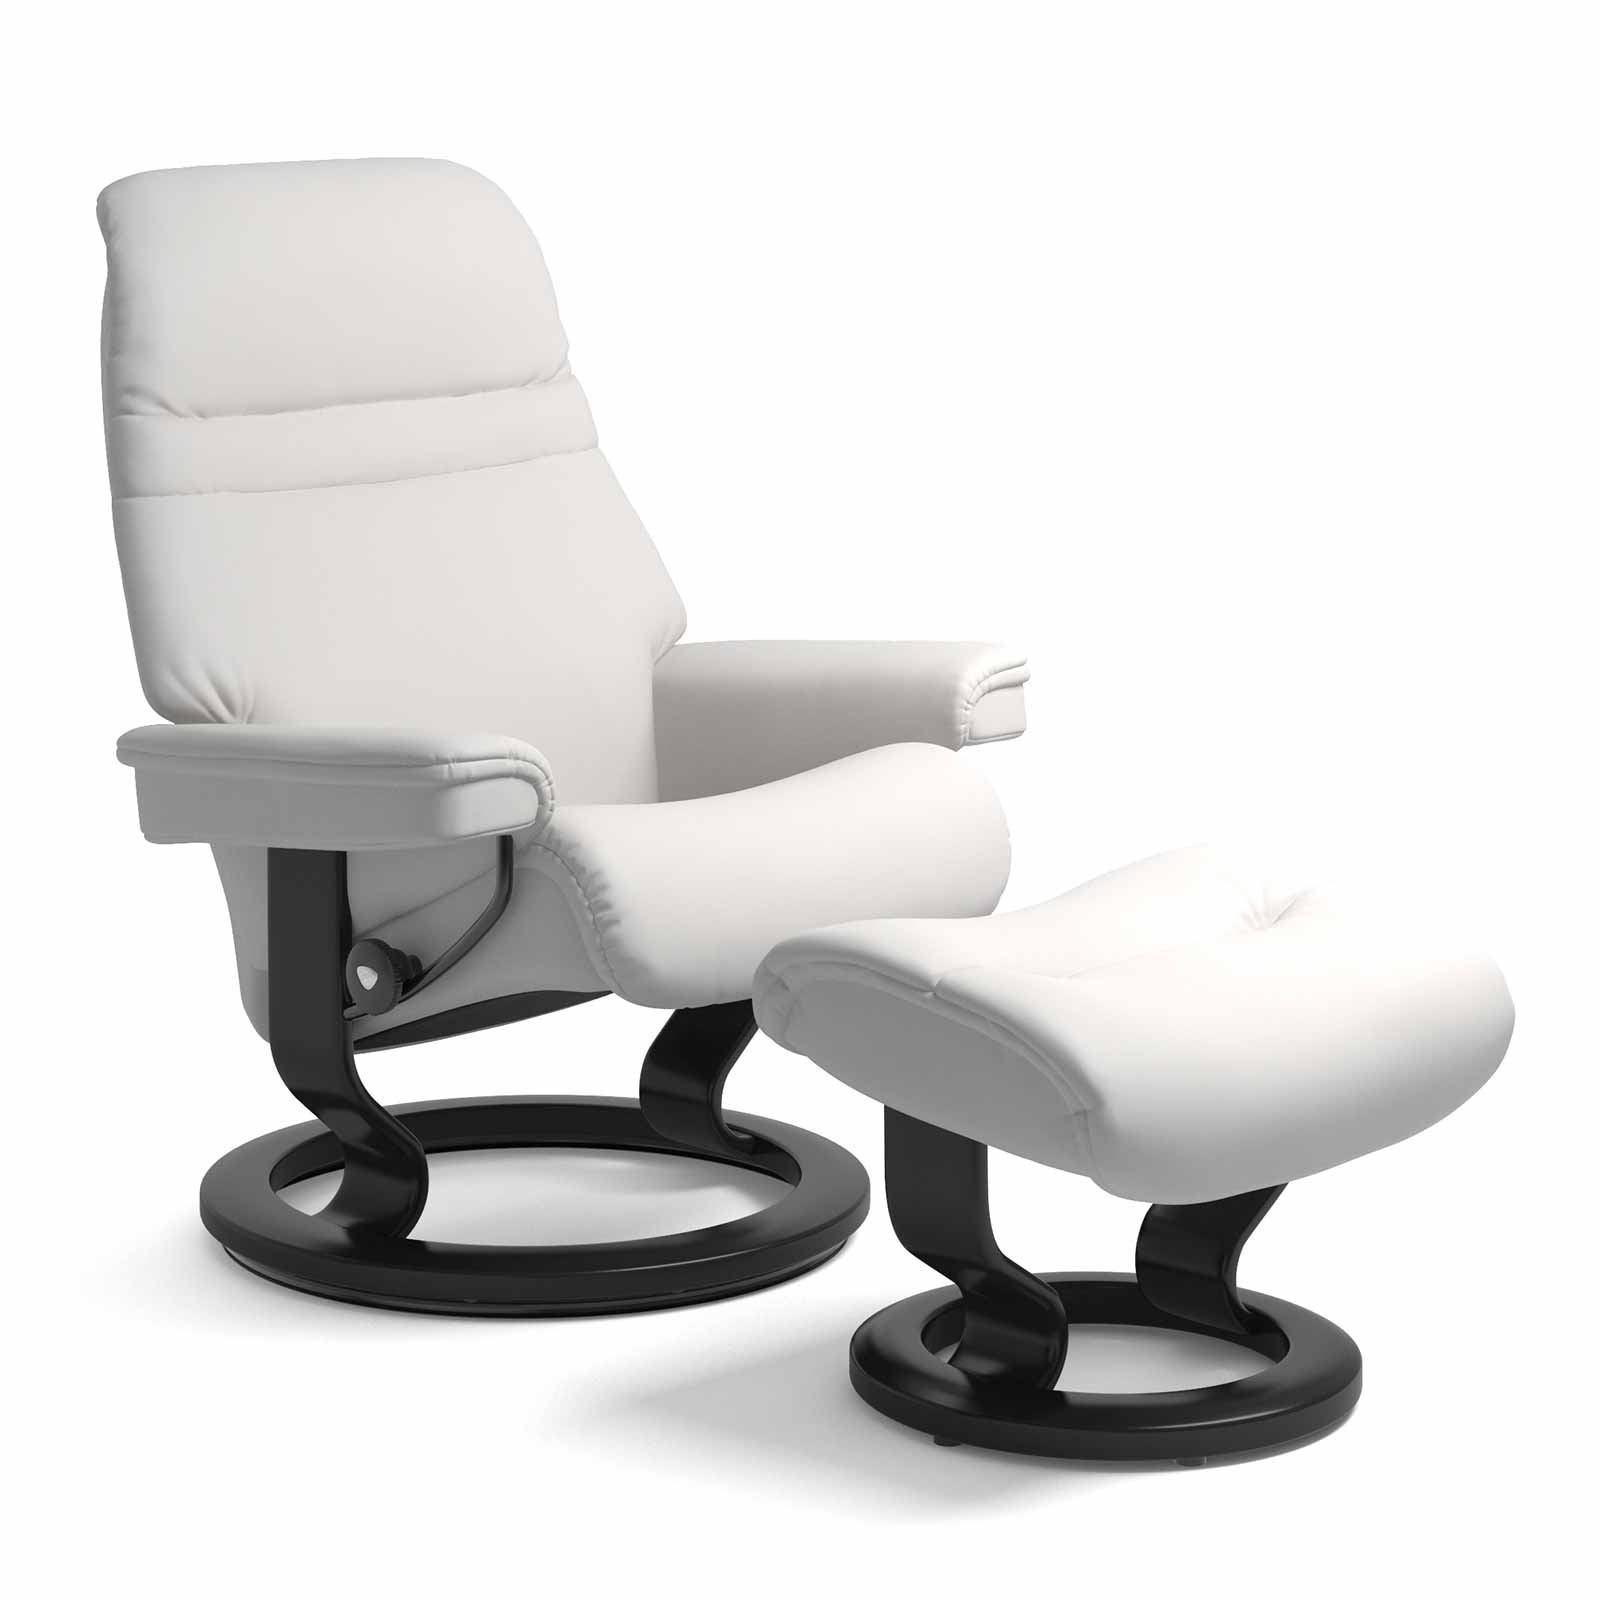 Stressless Sessel Sunrise.html Stressless Sessel Sunrise Classic Leder Batick Snow Mit Hocker